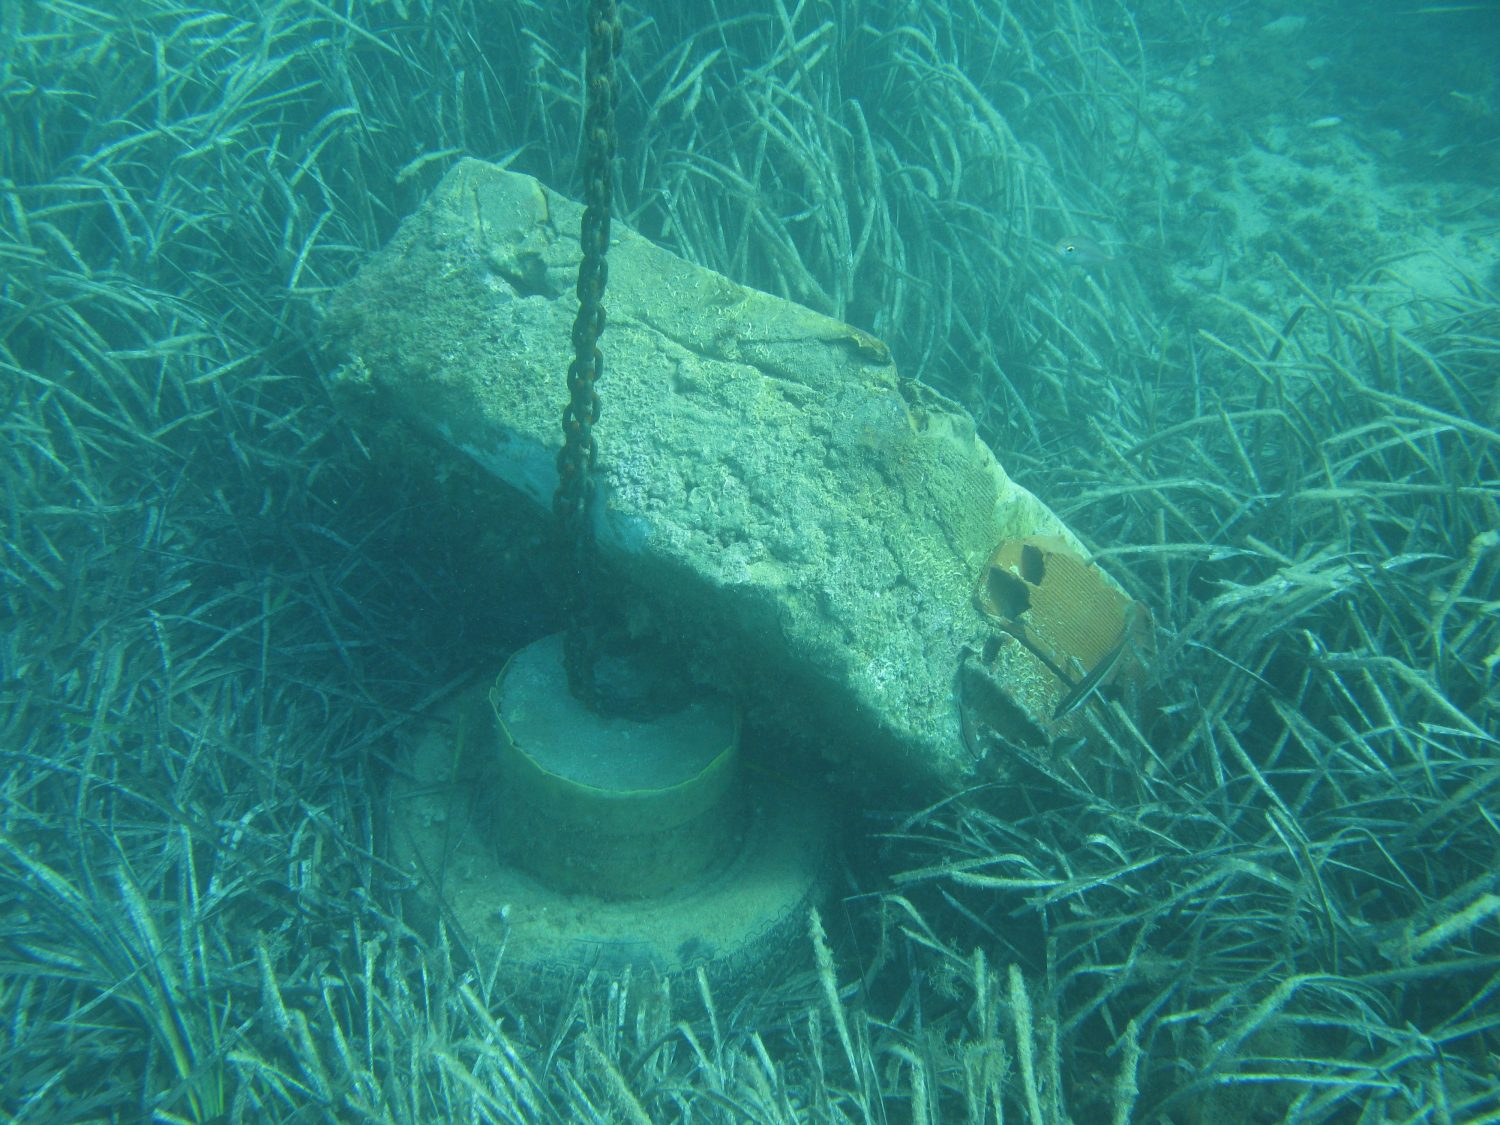 Restoration of Neptune seagrass meadows affected by mooring systems